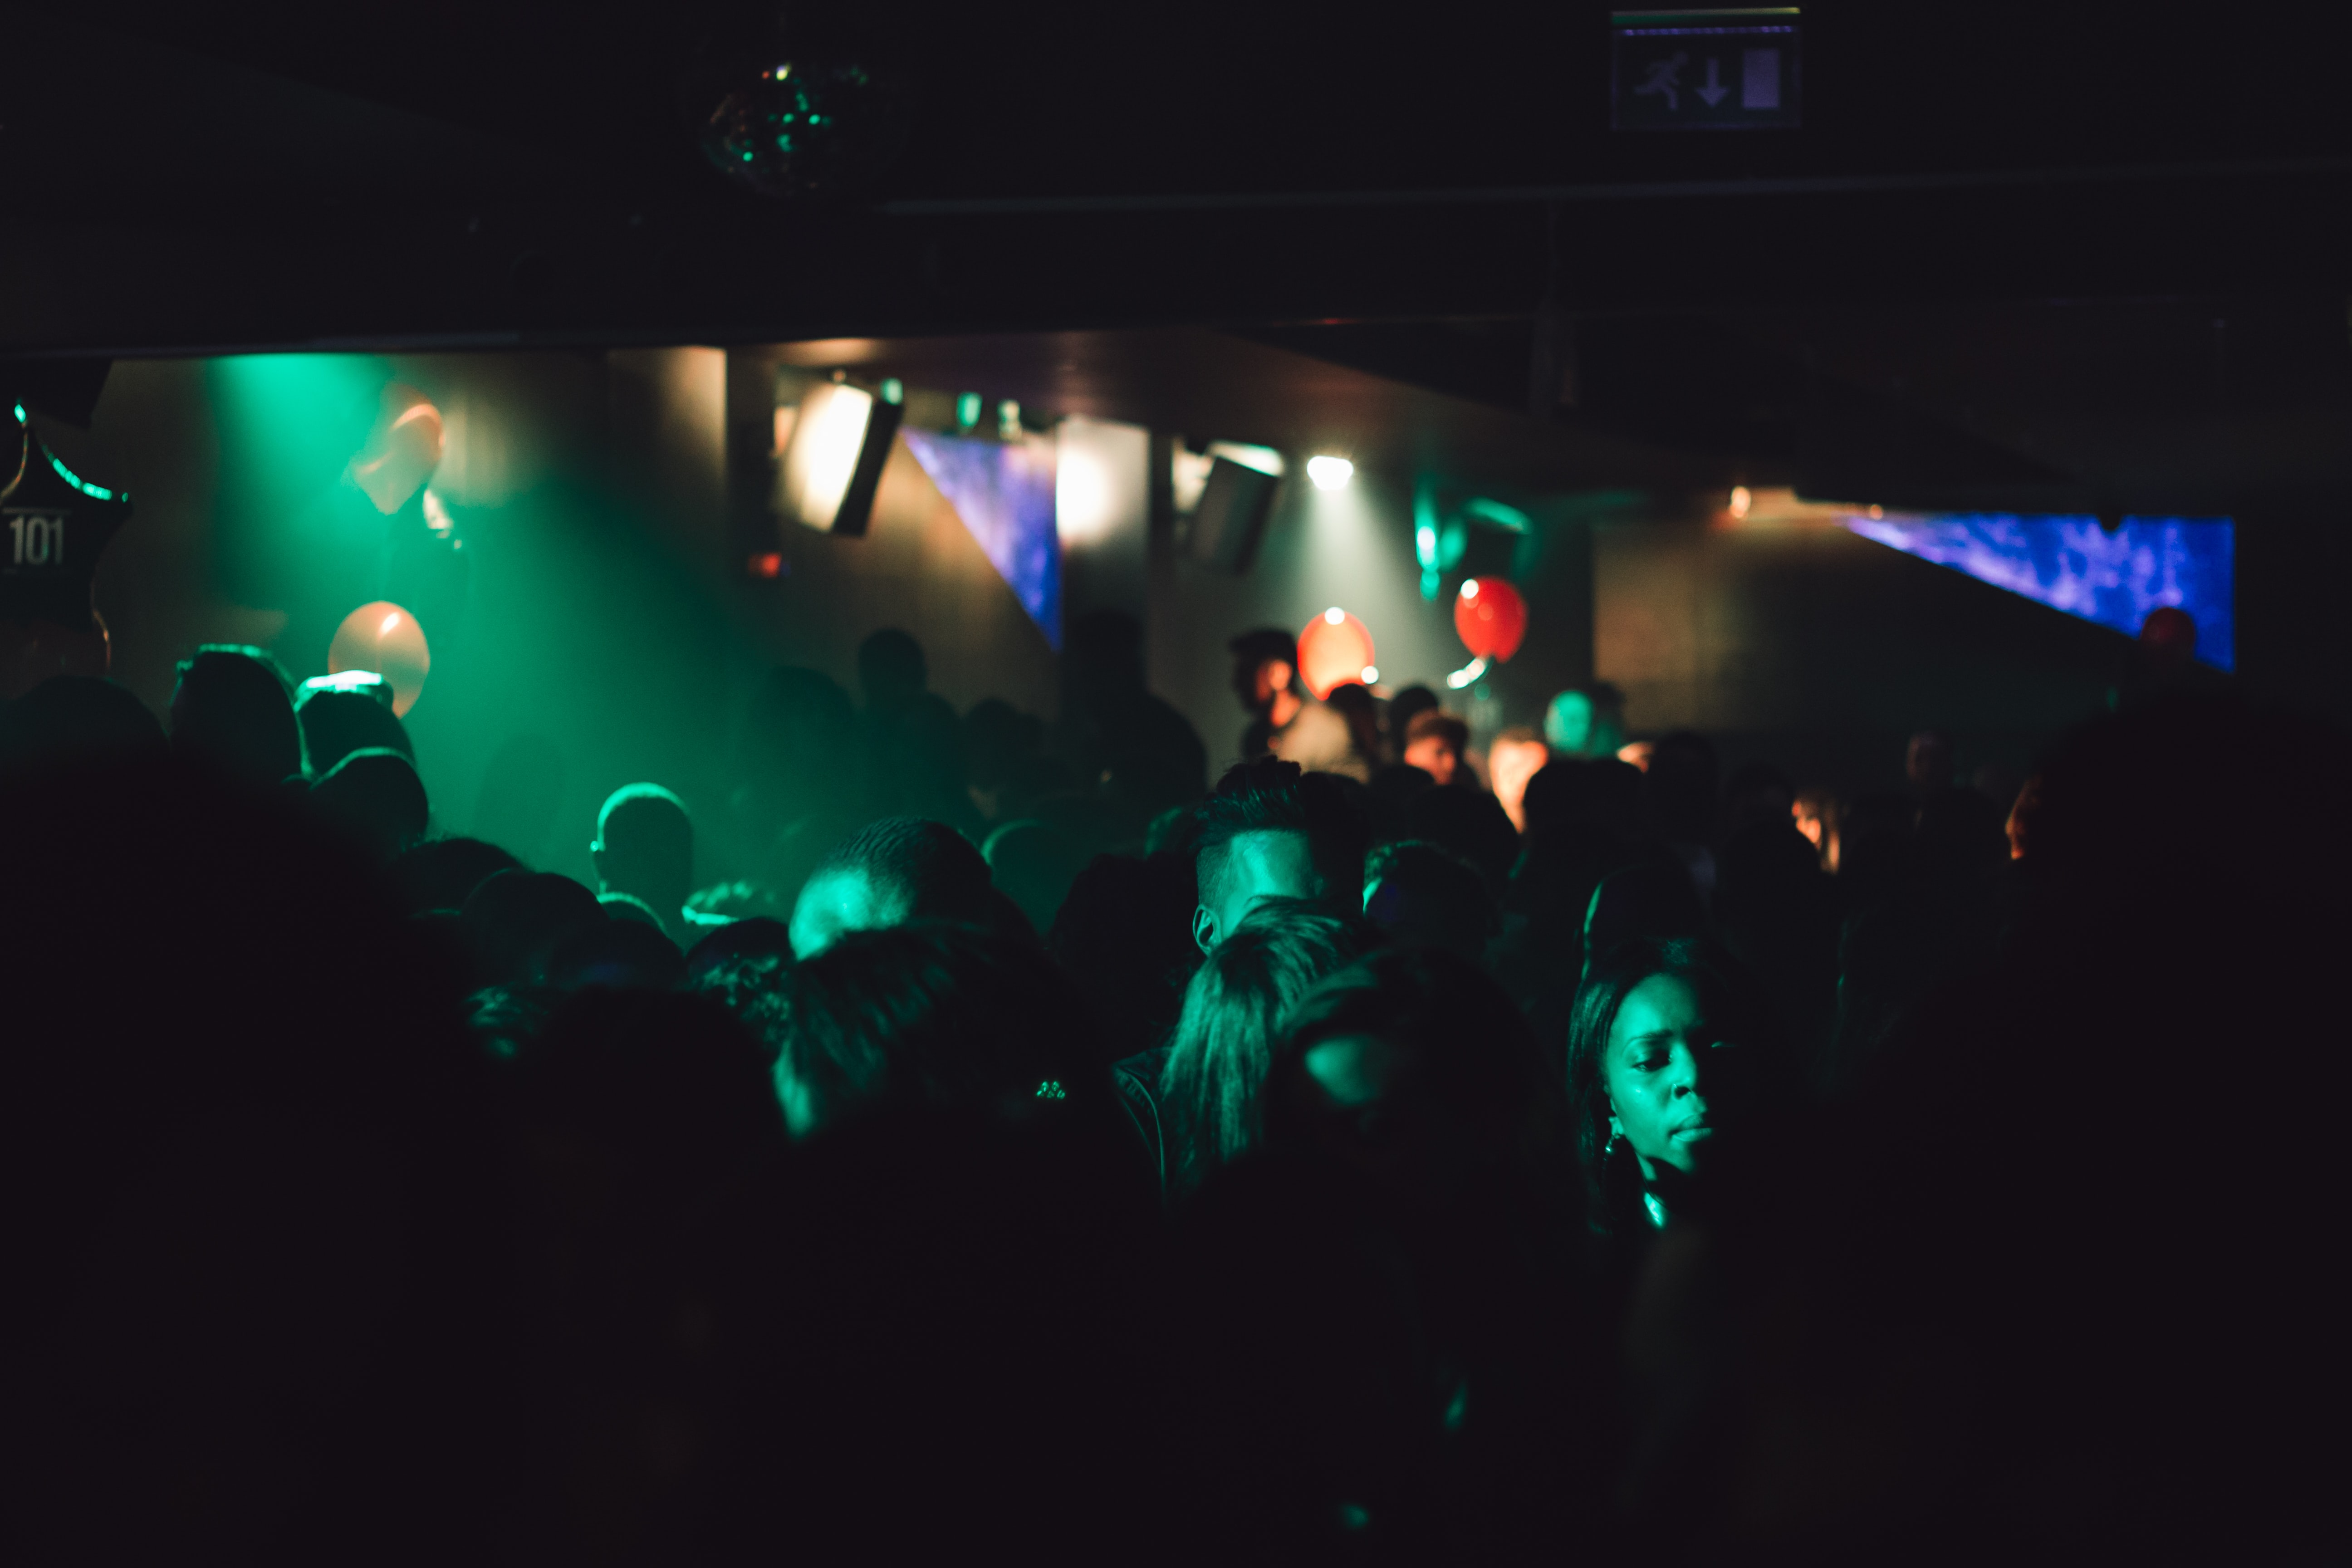 People dancing in a dark night club at the Birmingham Hippodrome in the United Kingdom